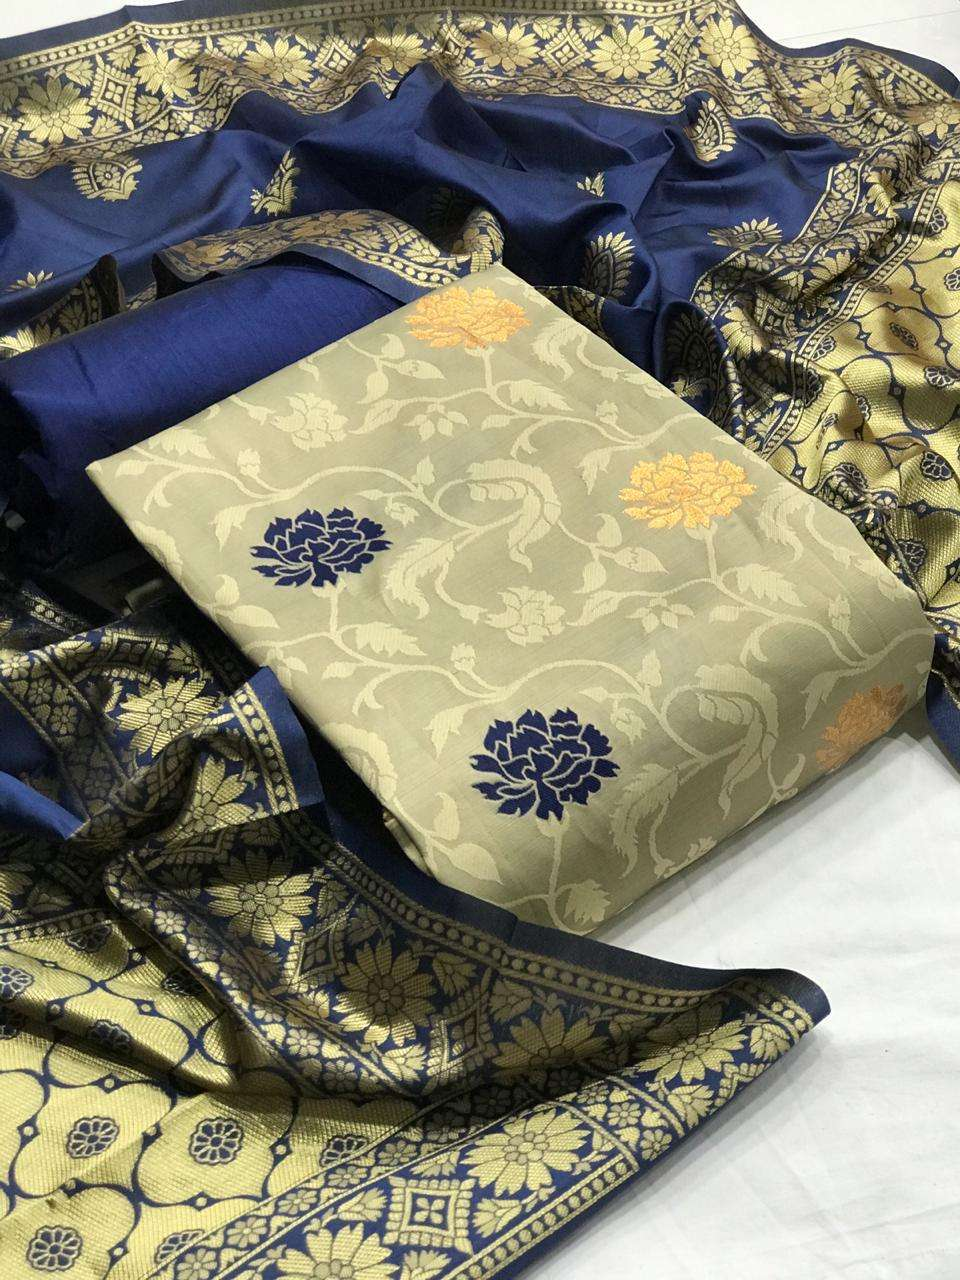 DESIGNER BANARASI SILK 5 WITH EMBROIDERY WORK SUITS IN SINGLES